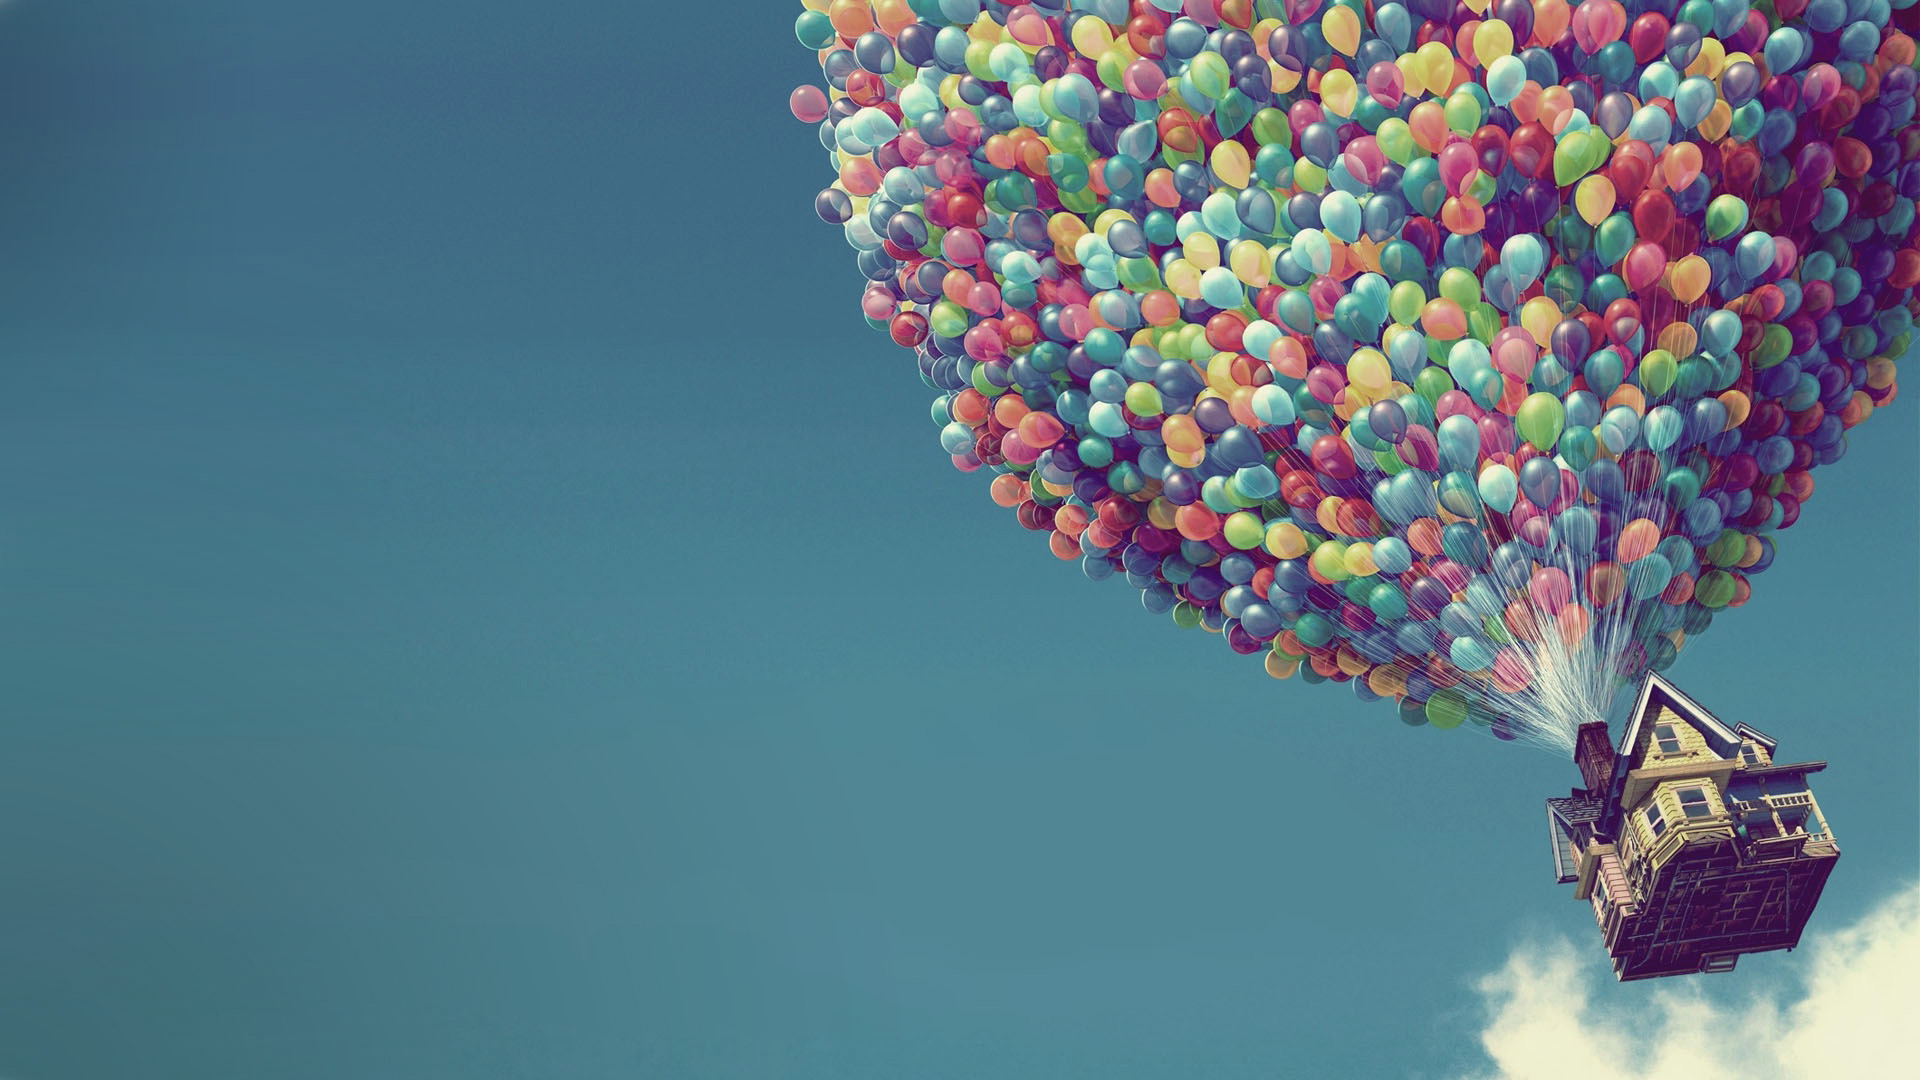 HD Wallpaper Balloons and the House in the sky Full HD Wallpapers 1920x1080